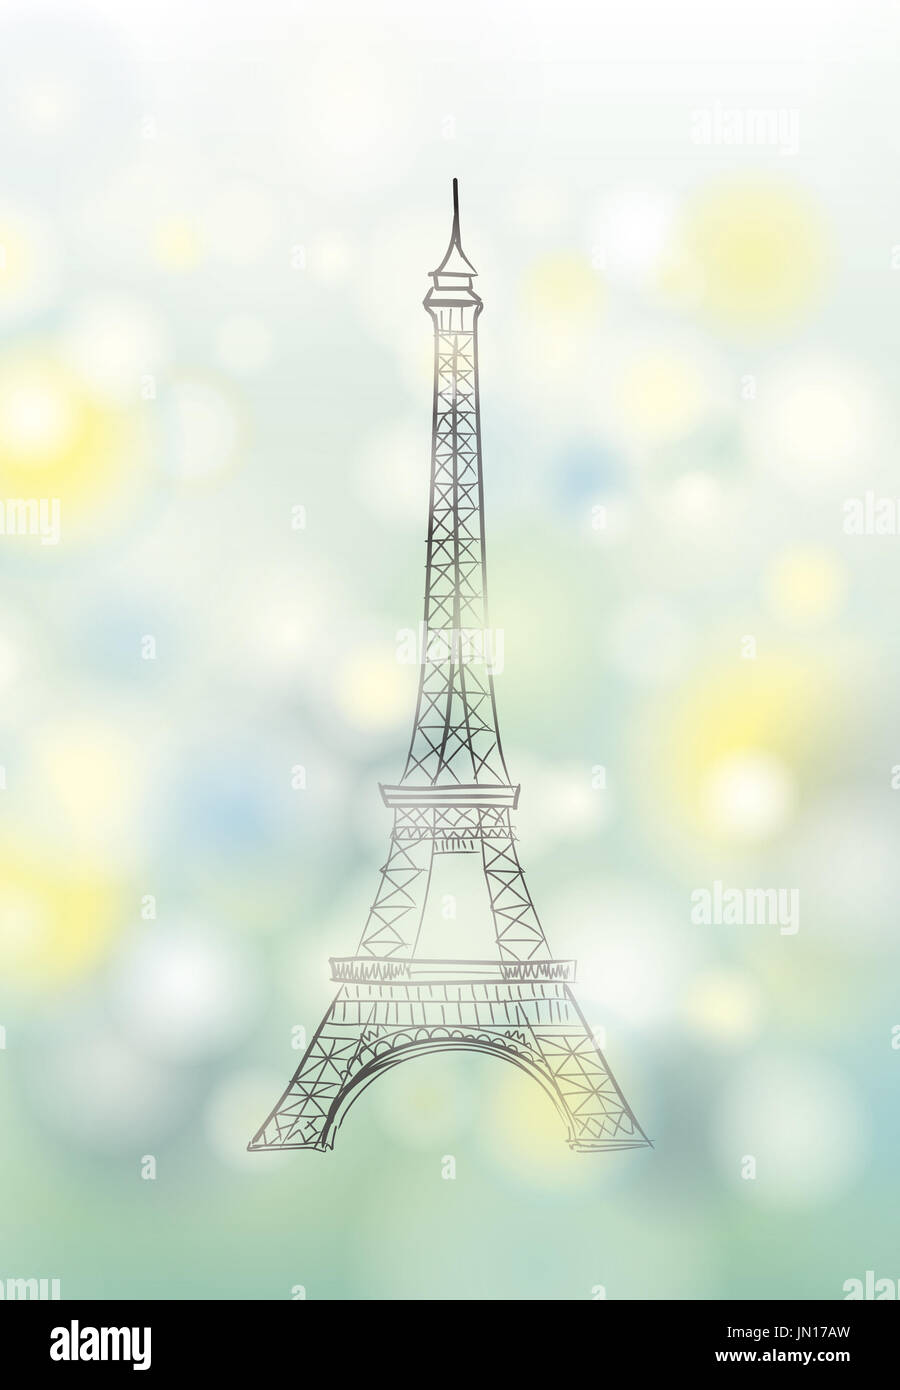 NEW POSTER Seine River France Europe Travel Paris and the Eiffel Tower